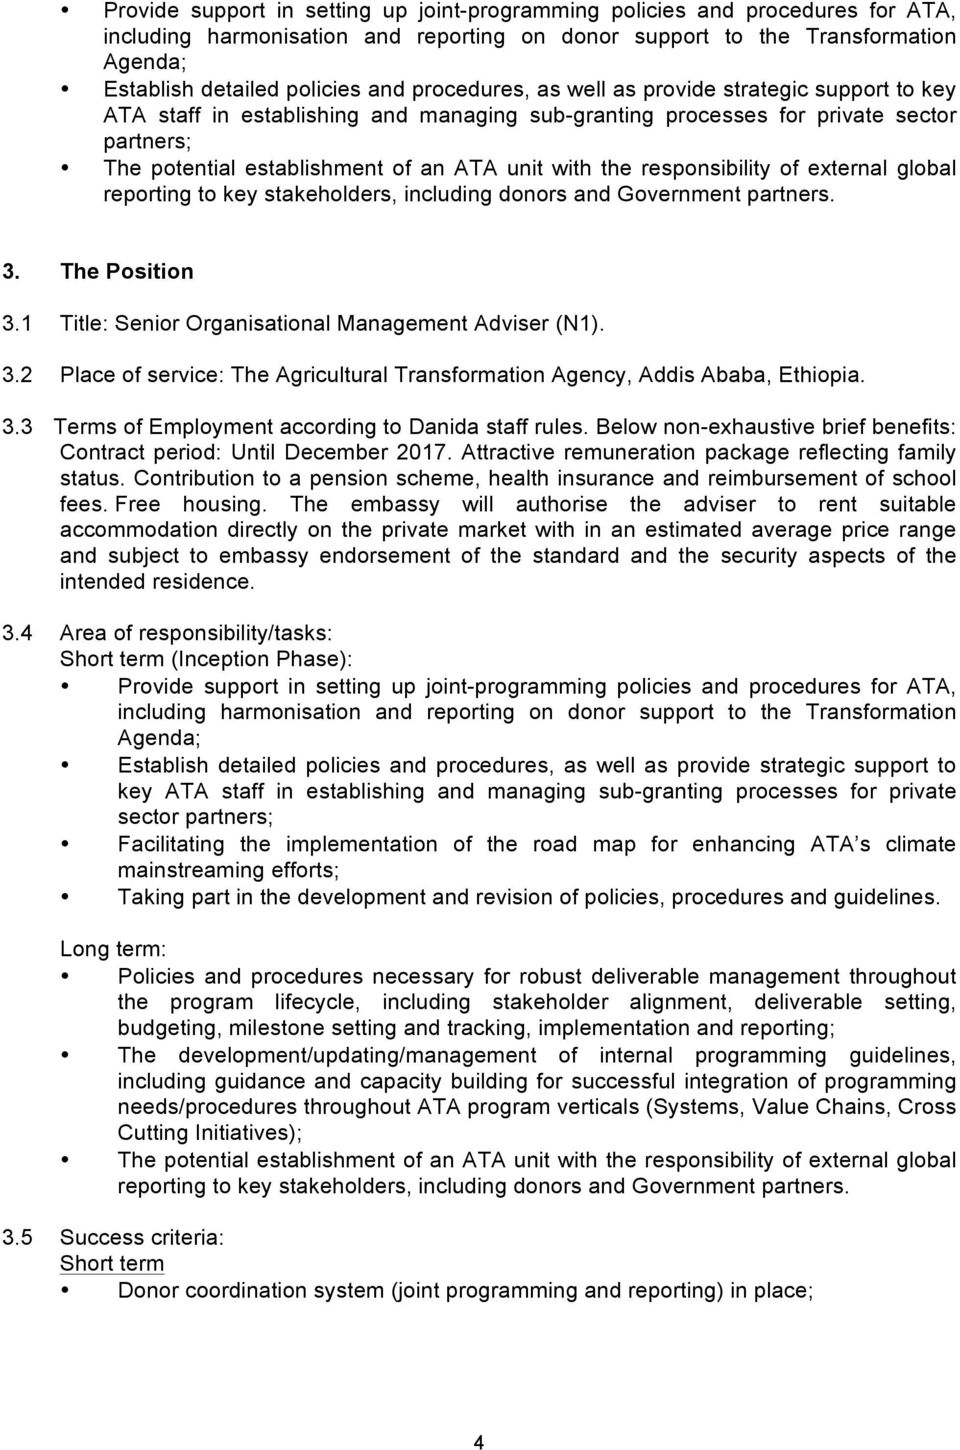 responsibility of external global reporting to key stakeholders, including donors and Government partners. 3. The Position 3.1 Title: Senior Organisational Management Adviser (N1). 3.2 Place of service: The Agricultural Transformation Agency, Addis Ababa, Ethiopia.